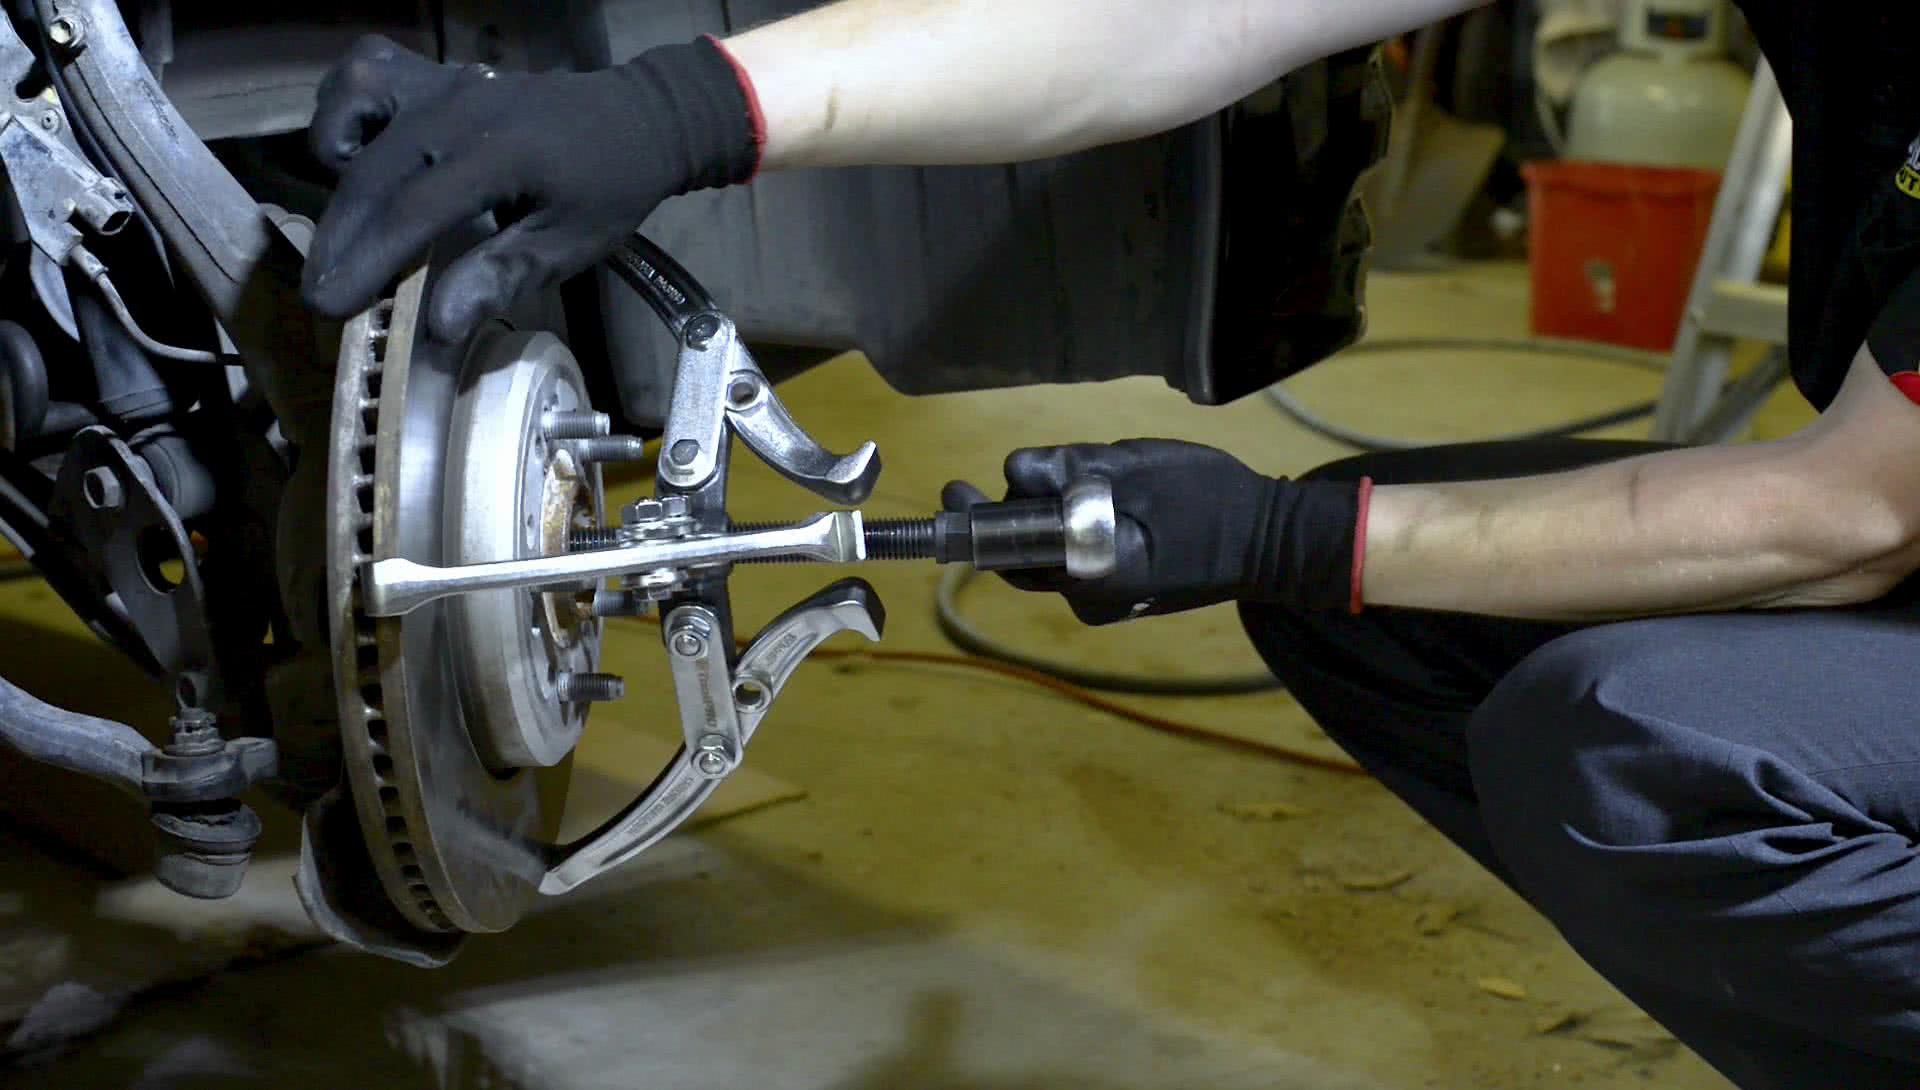 Setting up a gear puller